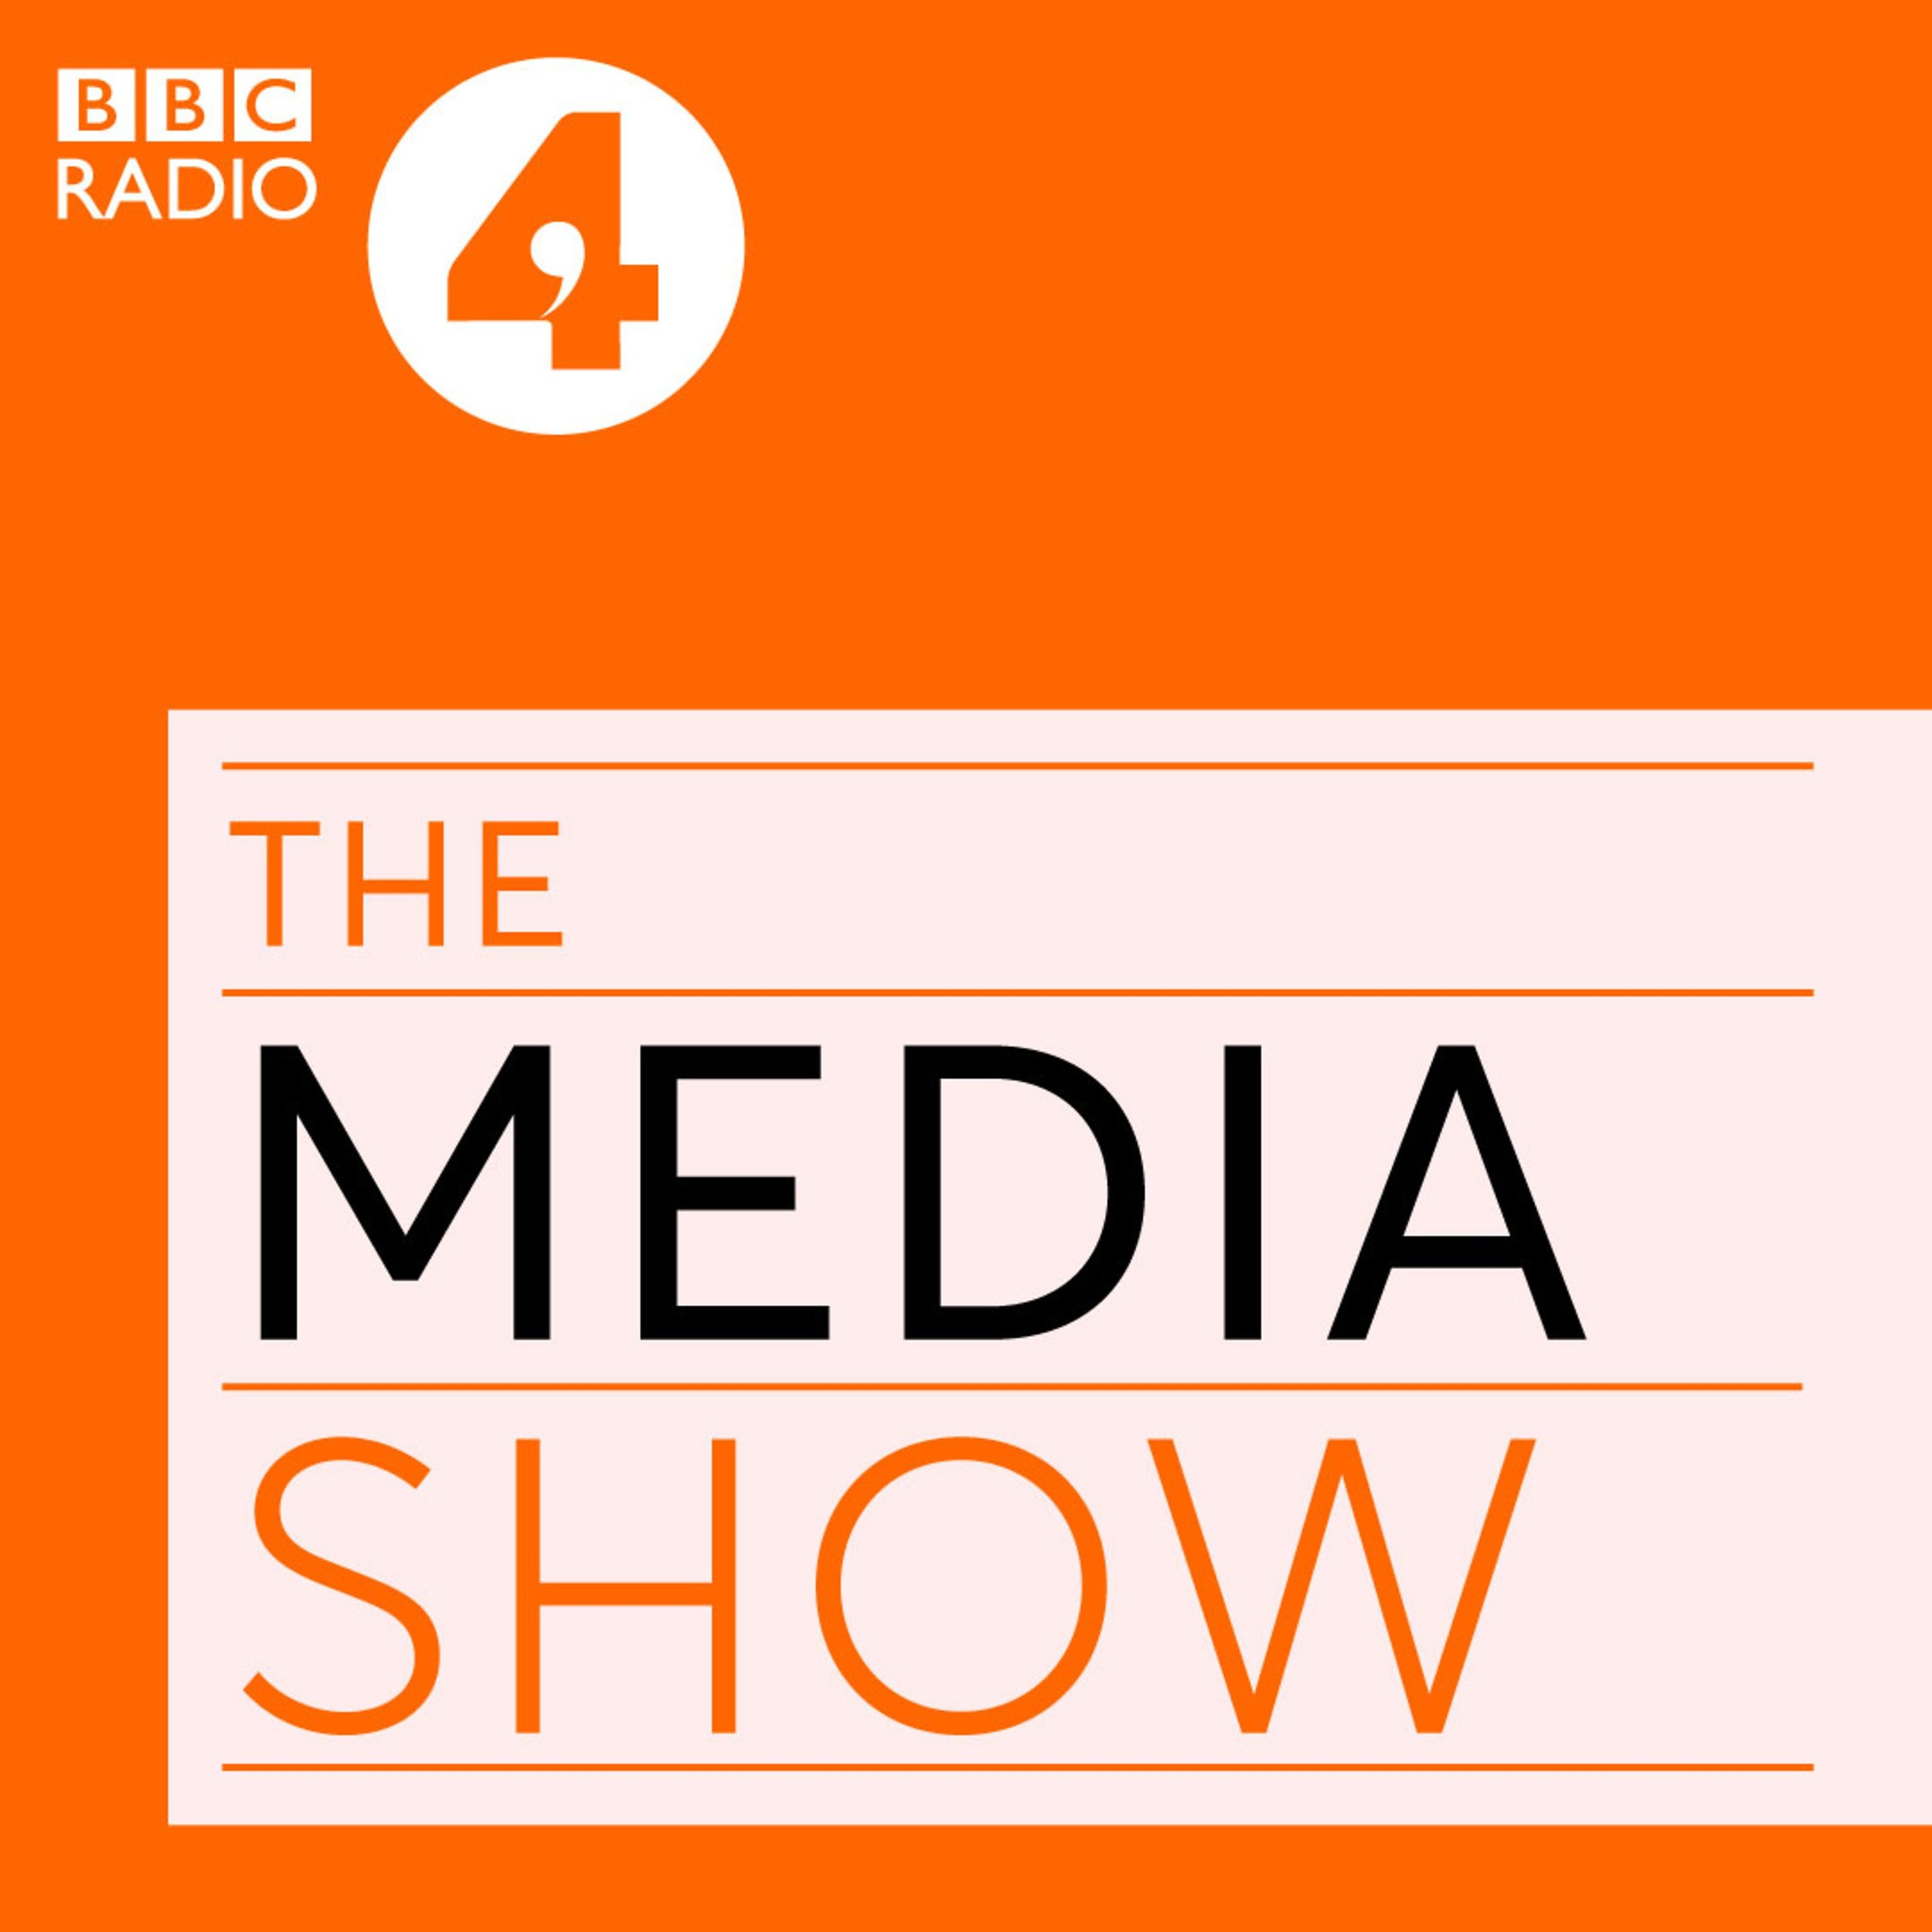 The Media Show - I talk about The Pool with host Amol Rajan, and guests Jo Elvin and Olivia Crellin.